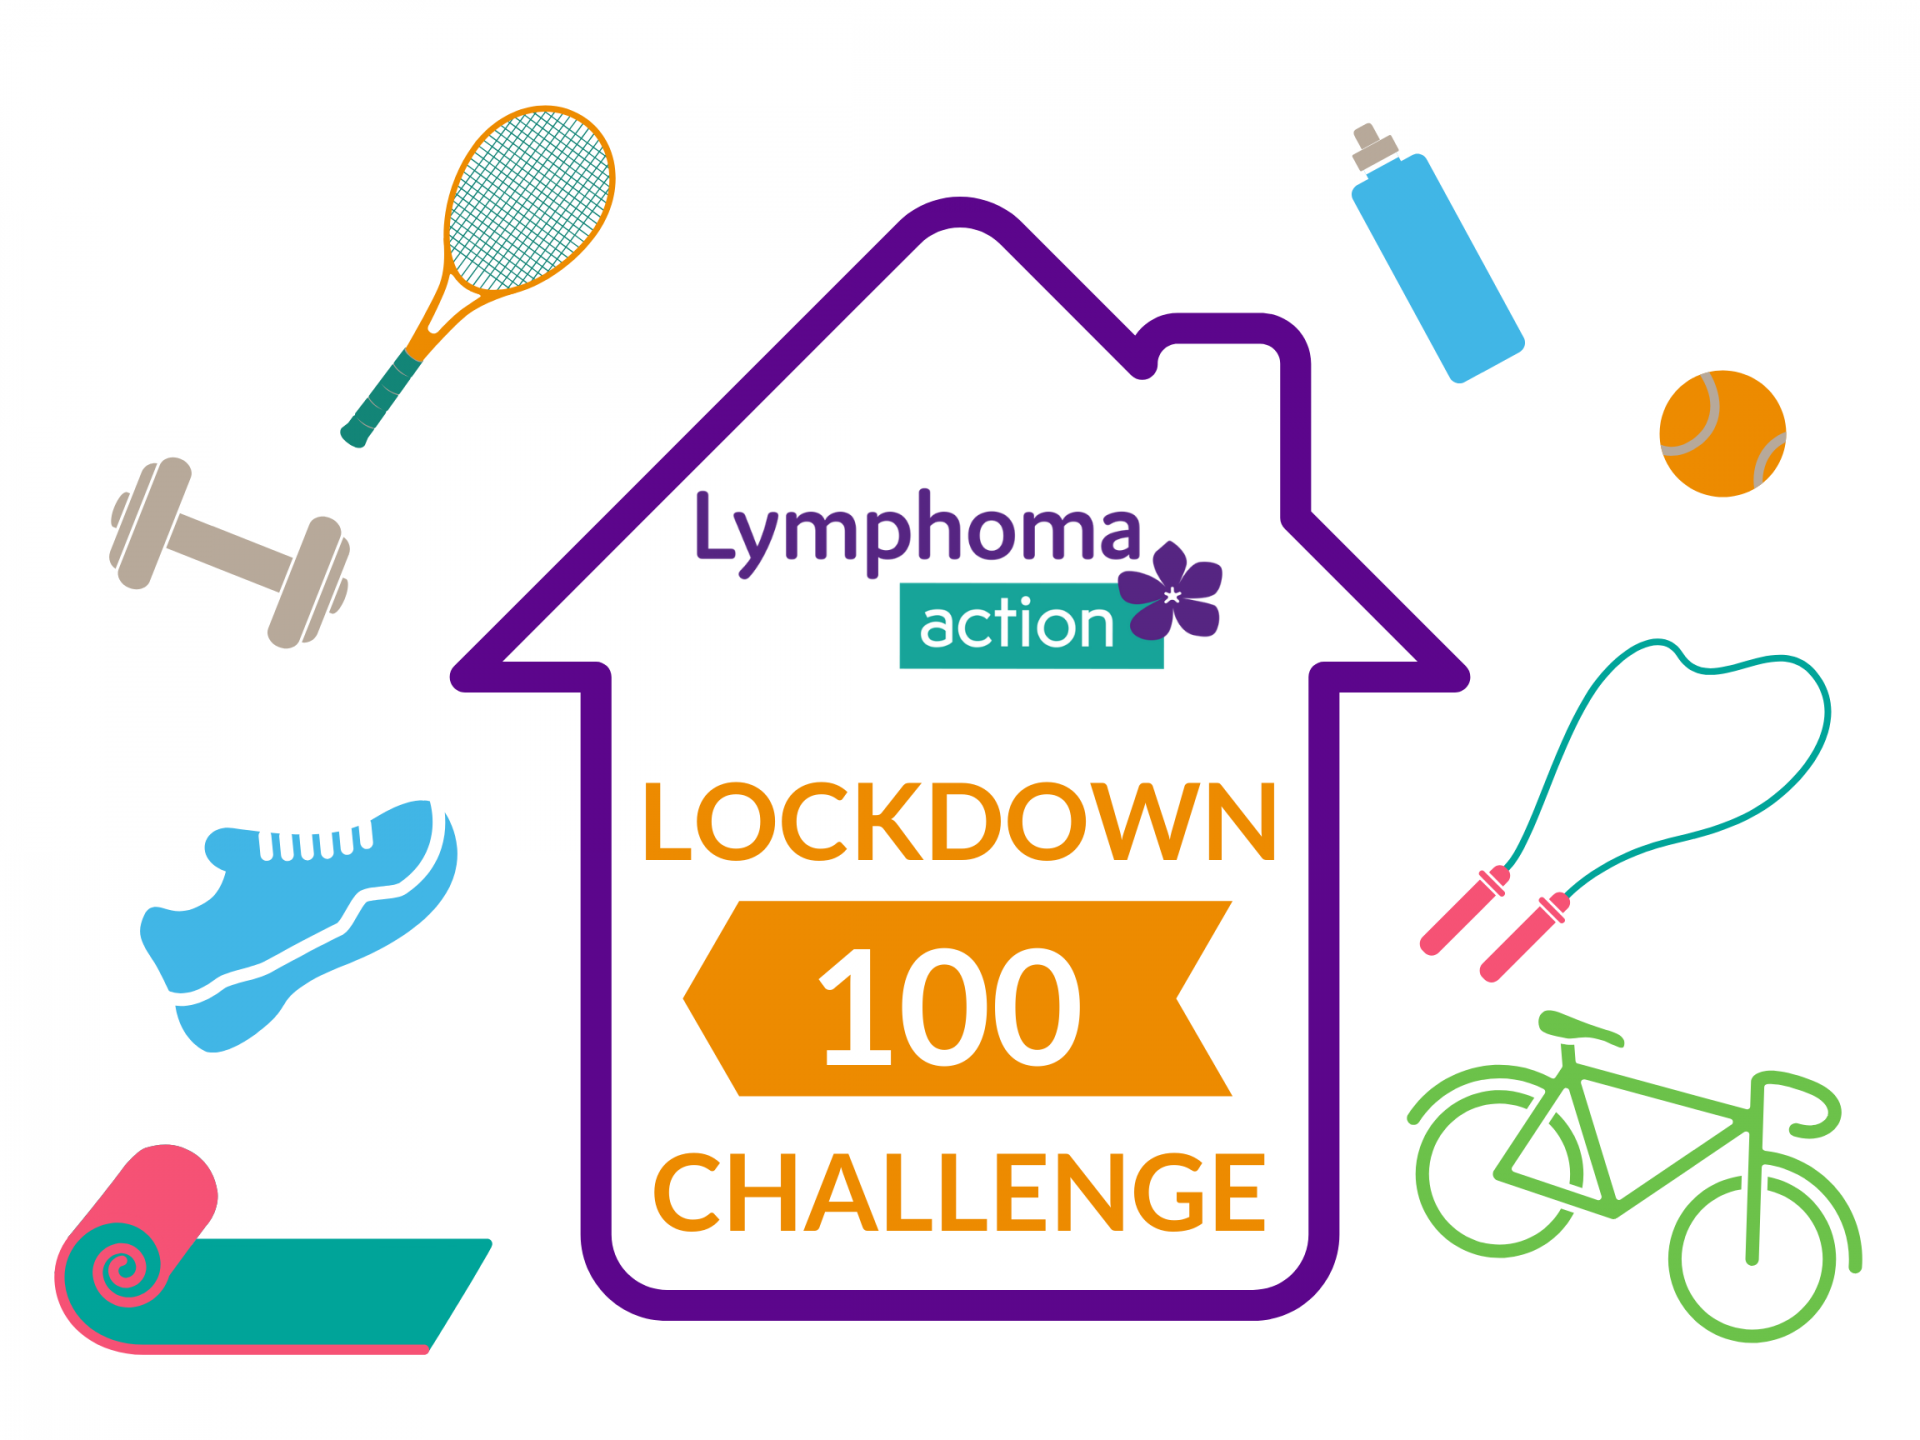 Graphic for Lymphoma Action lockdown 100 challenge